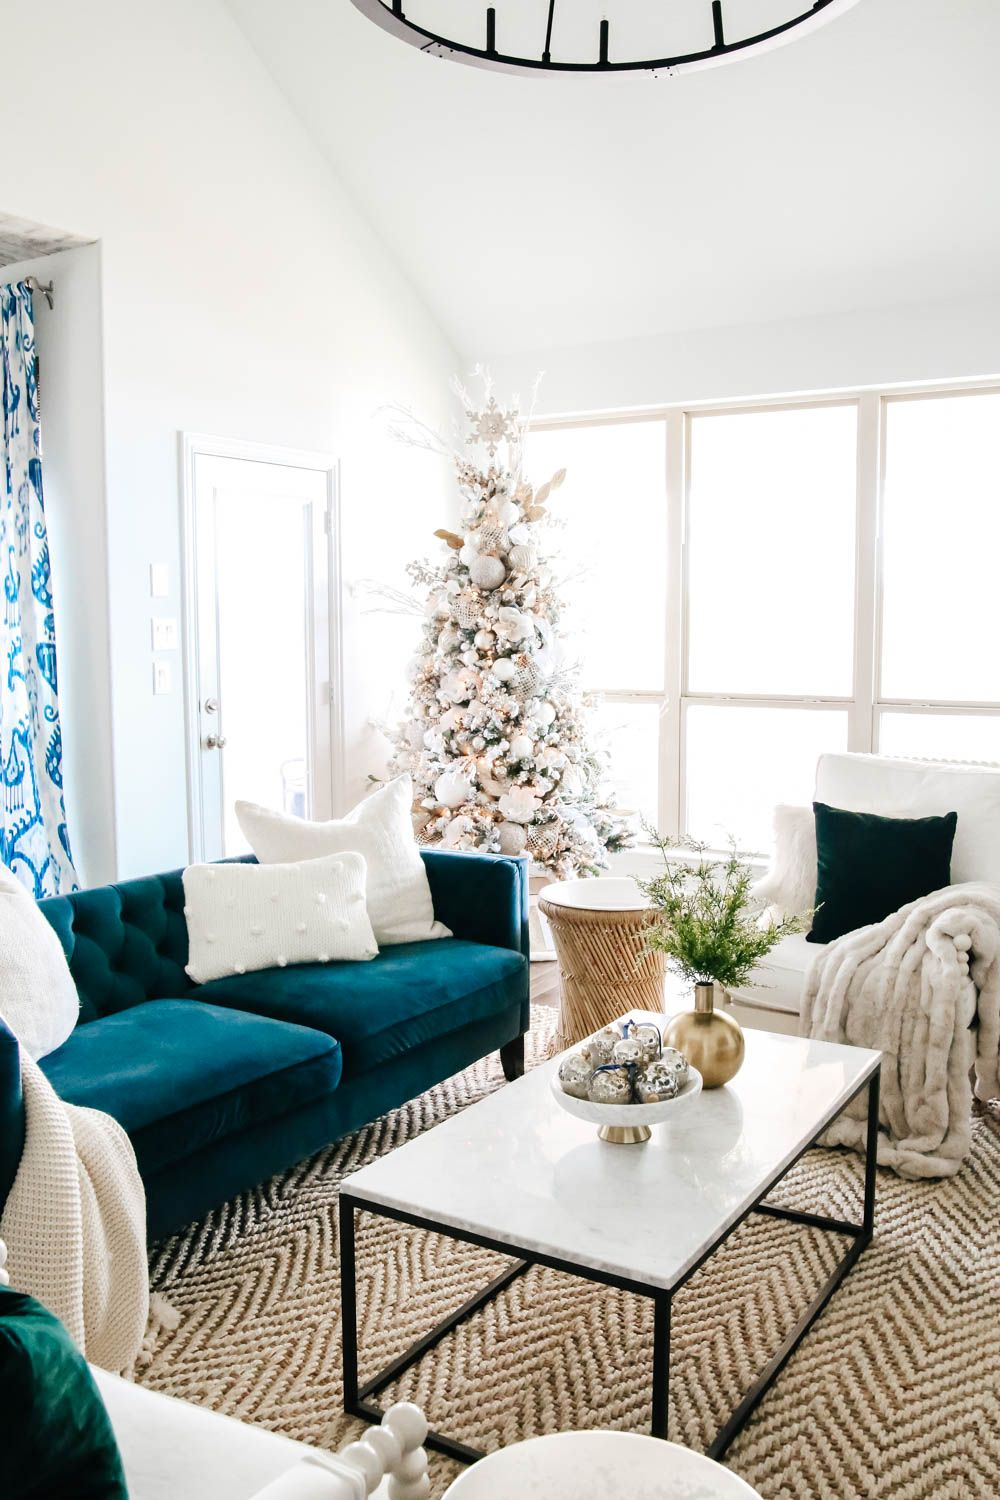 Christmas Living Room Ideas 25 Easy Admirable Decor To Steal Now Christmas Arrangements Simple Christmas Easy Christmas Crafts